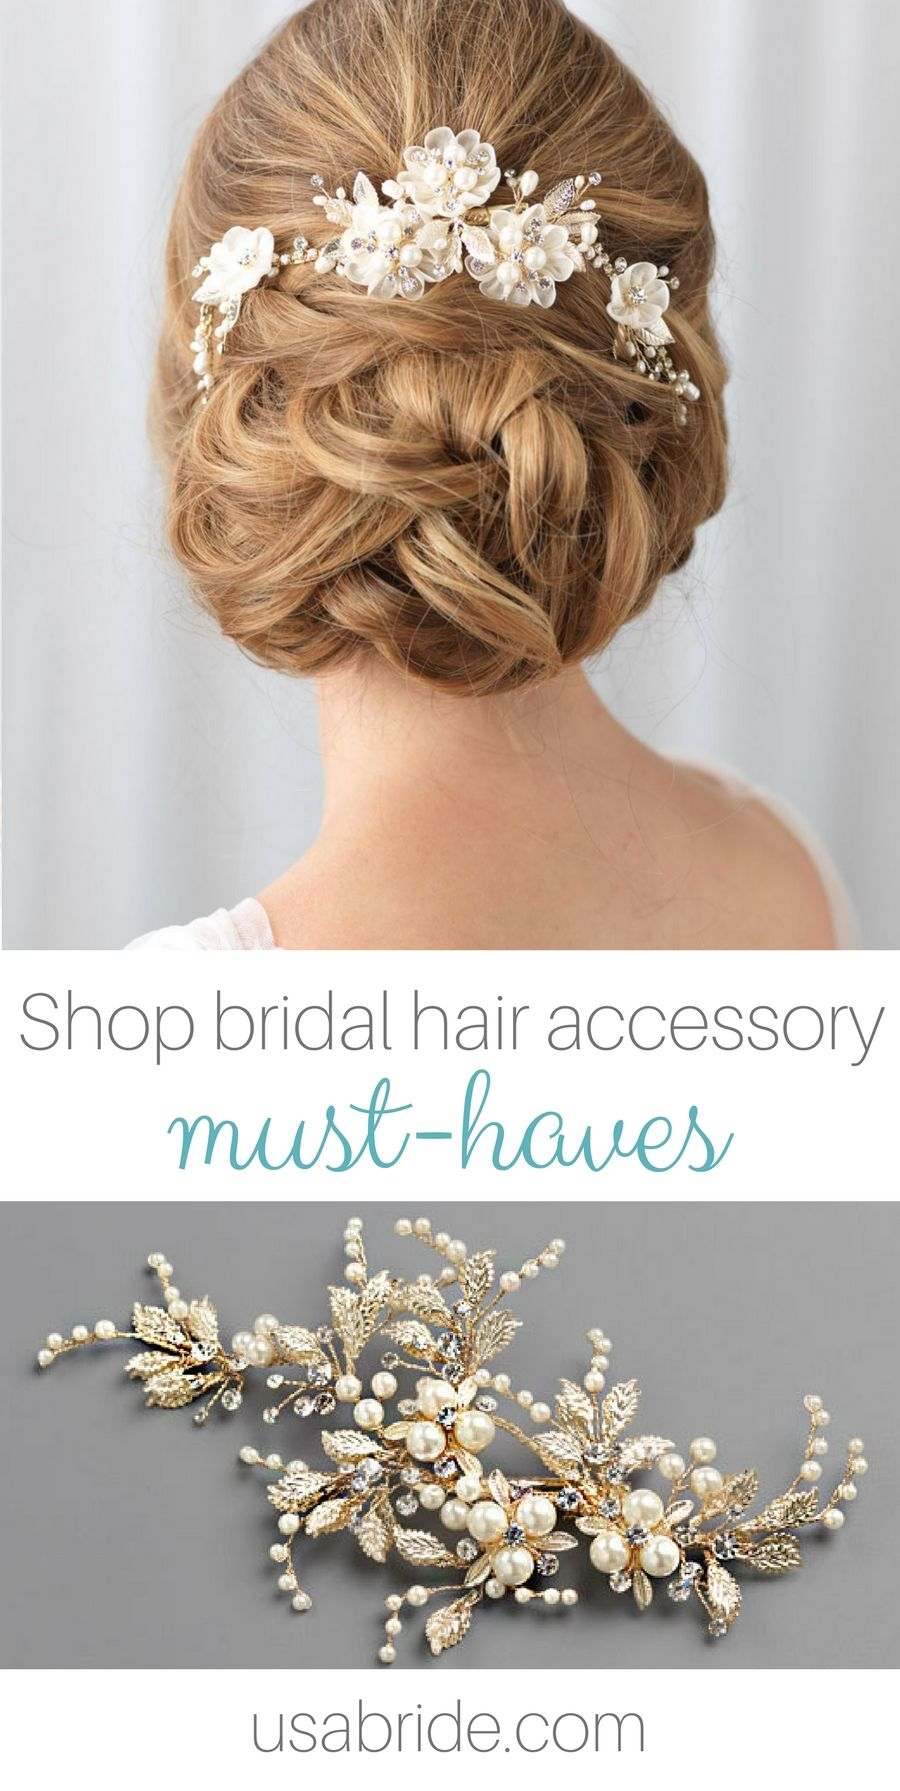 Find the perfect hair accessory for your wedding day hairstyles